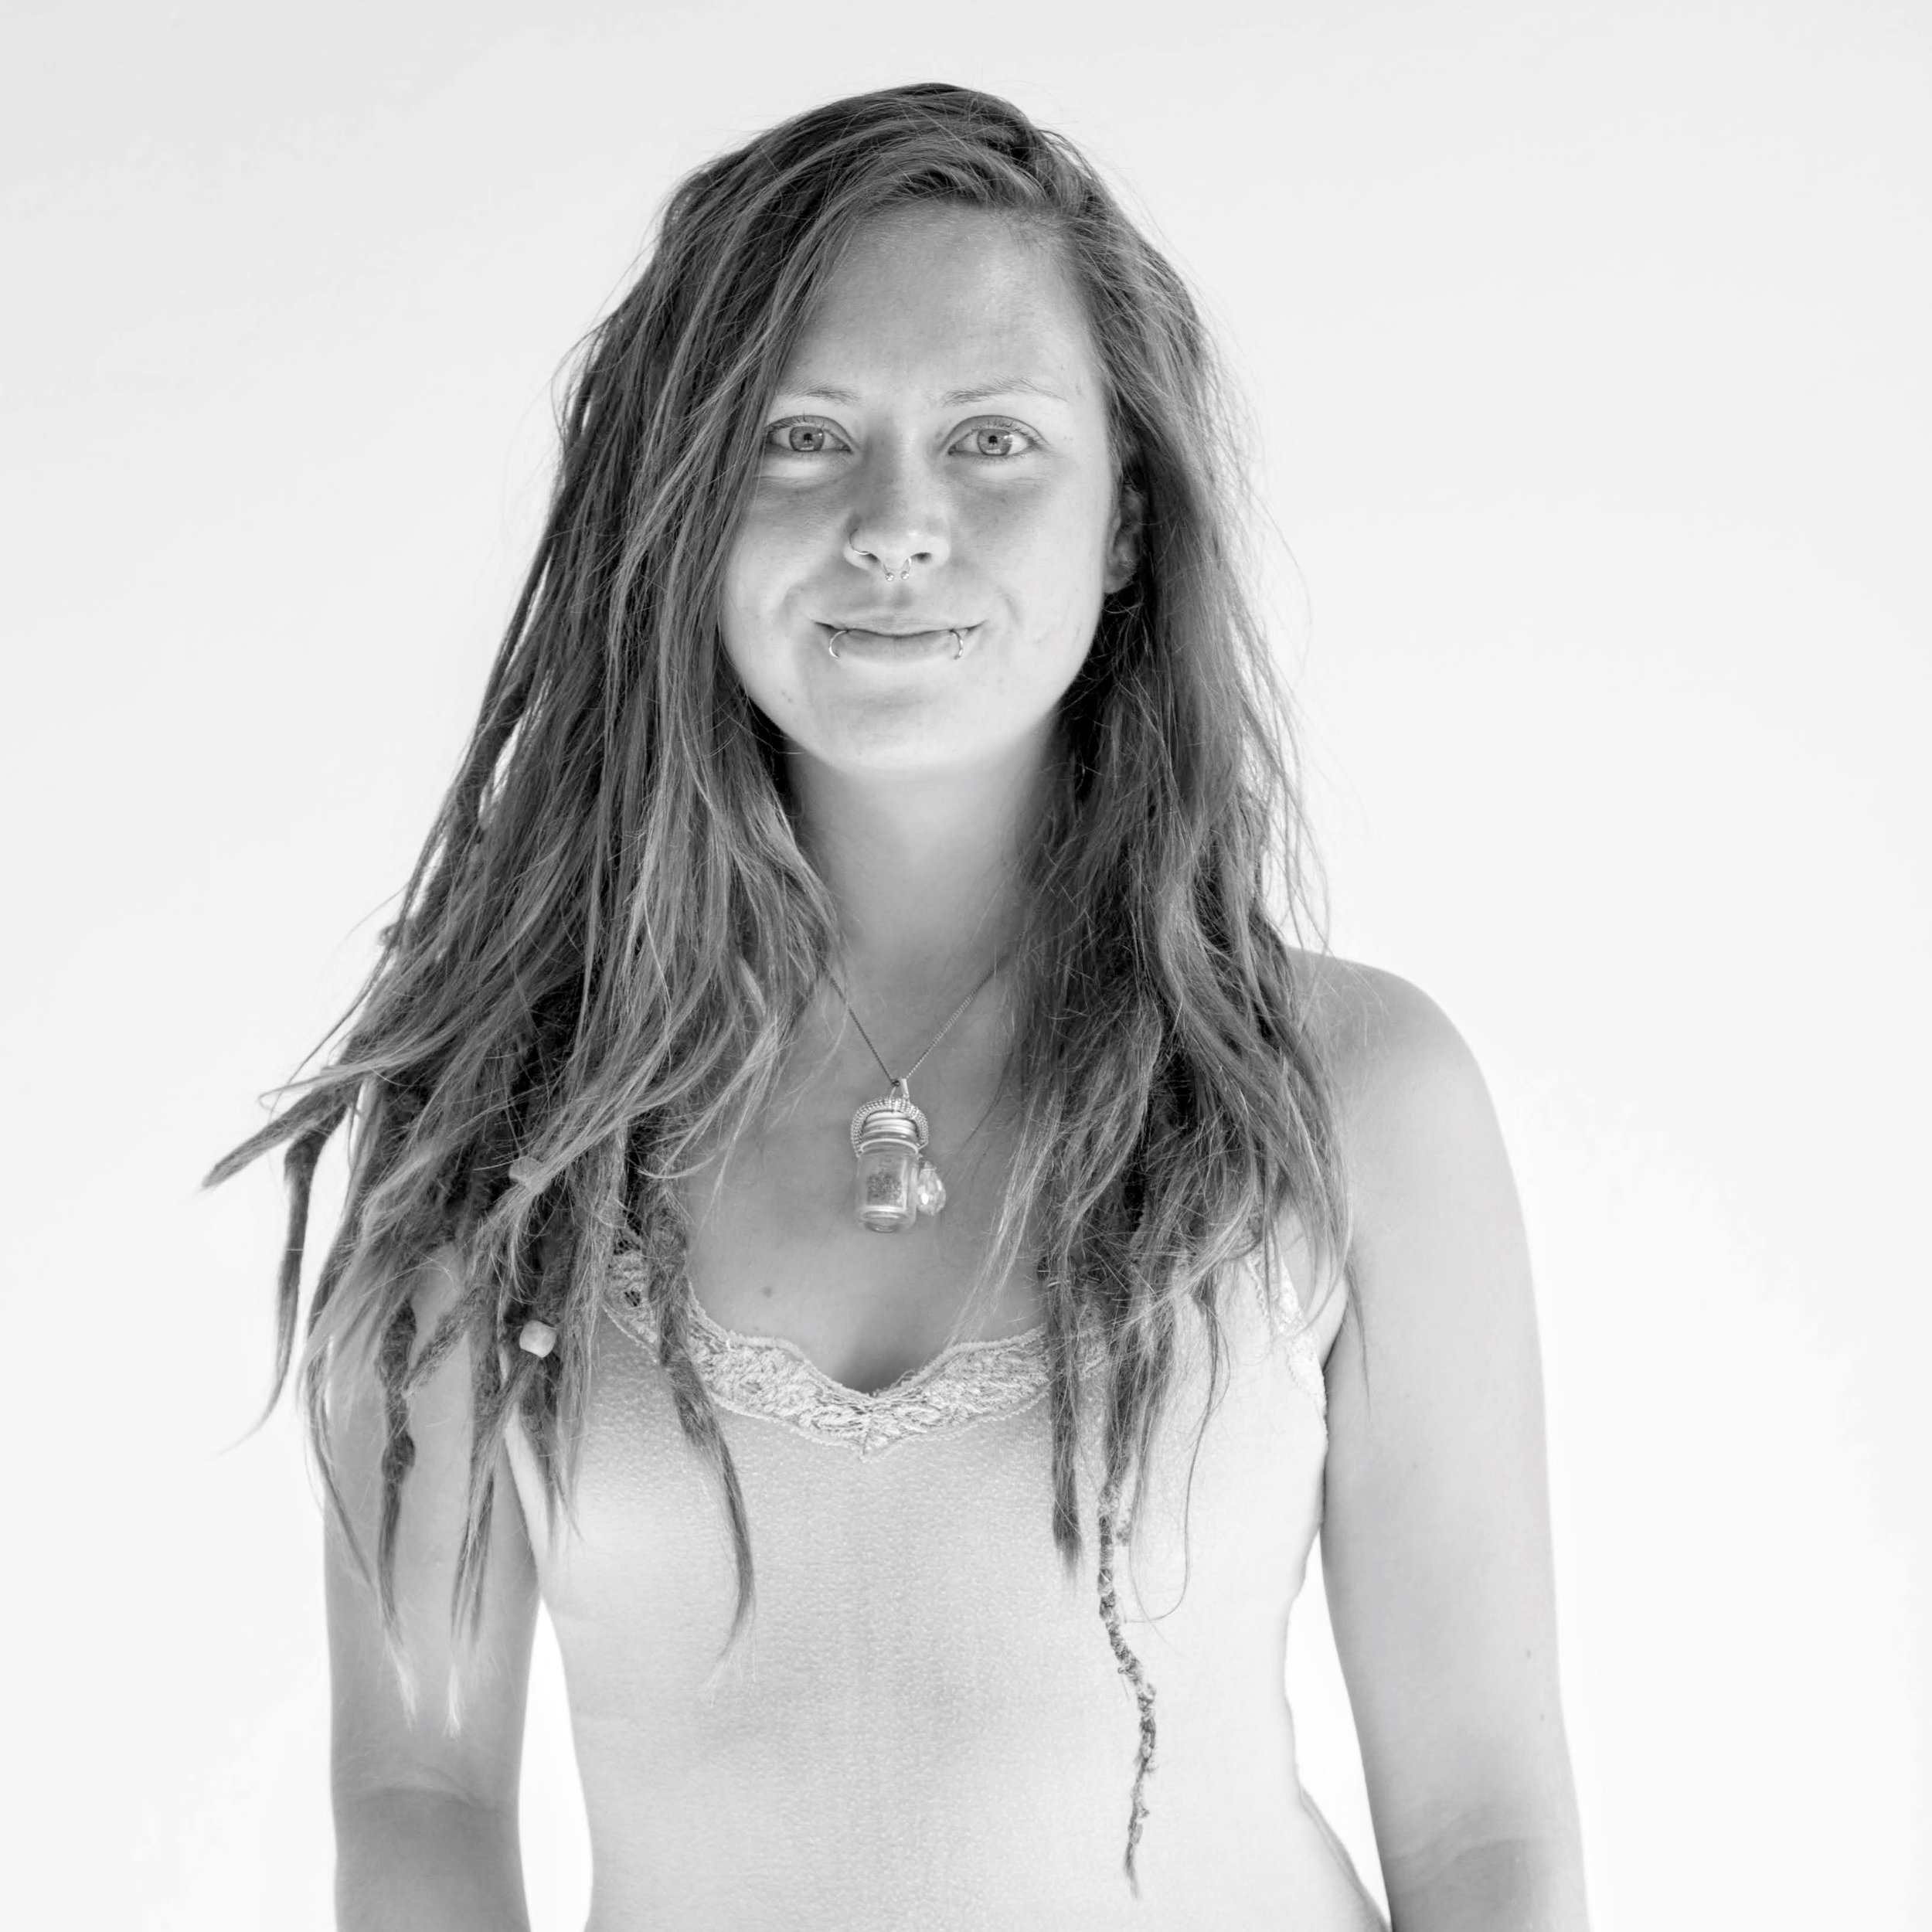 Geraldine Klewes - Teacher YOGA (DE/EN)CERTIFICATIONS:• 200H Yoga Certificate• 100H Y4ALL Advanced Yoga Certificate• 60H Yin Yoga Certificate• E-RYT 200